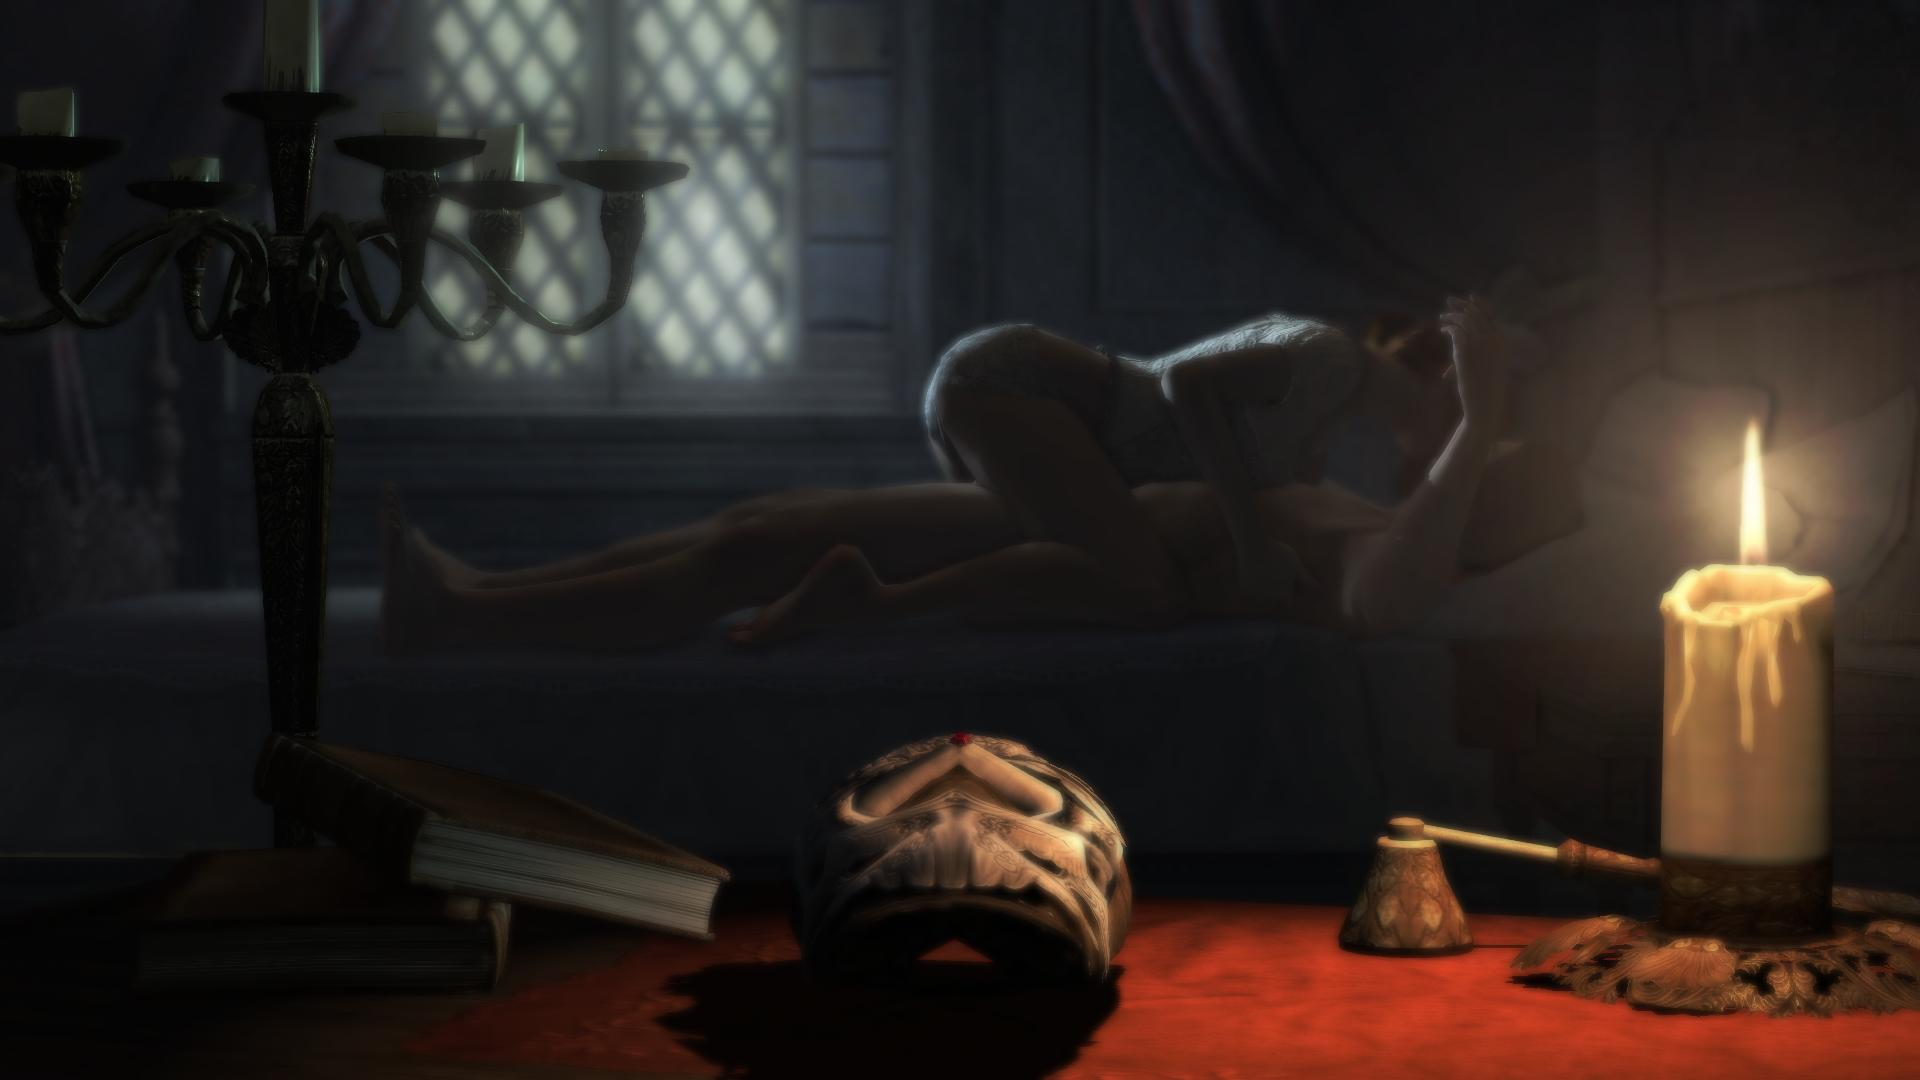 Assassin creed brotherhood naked pornos images